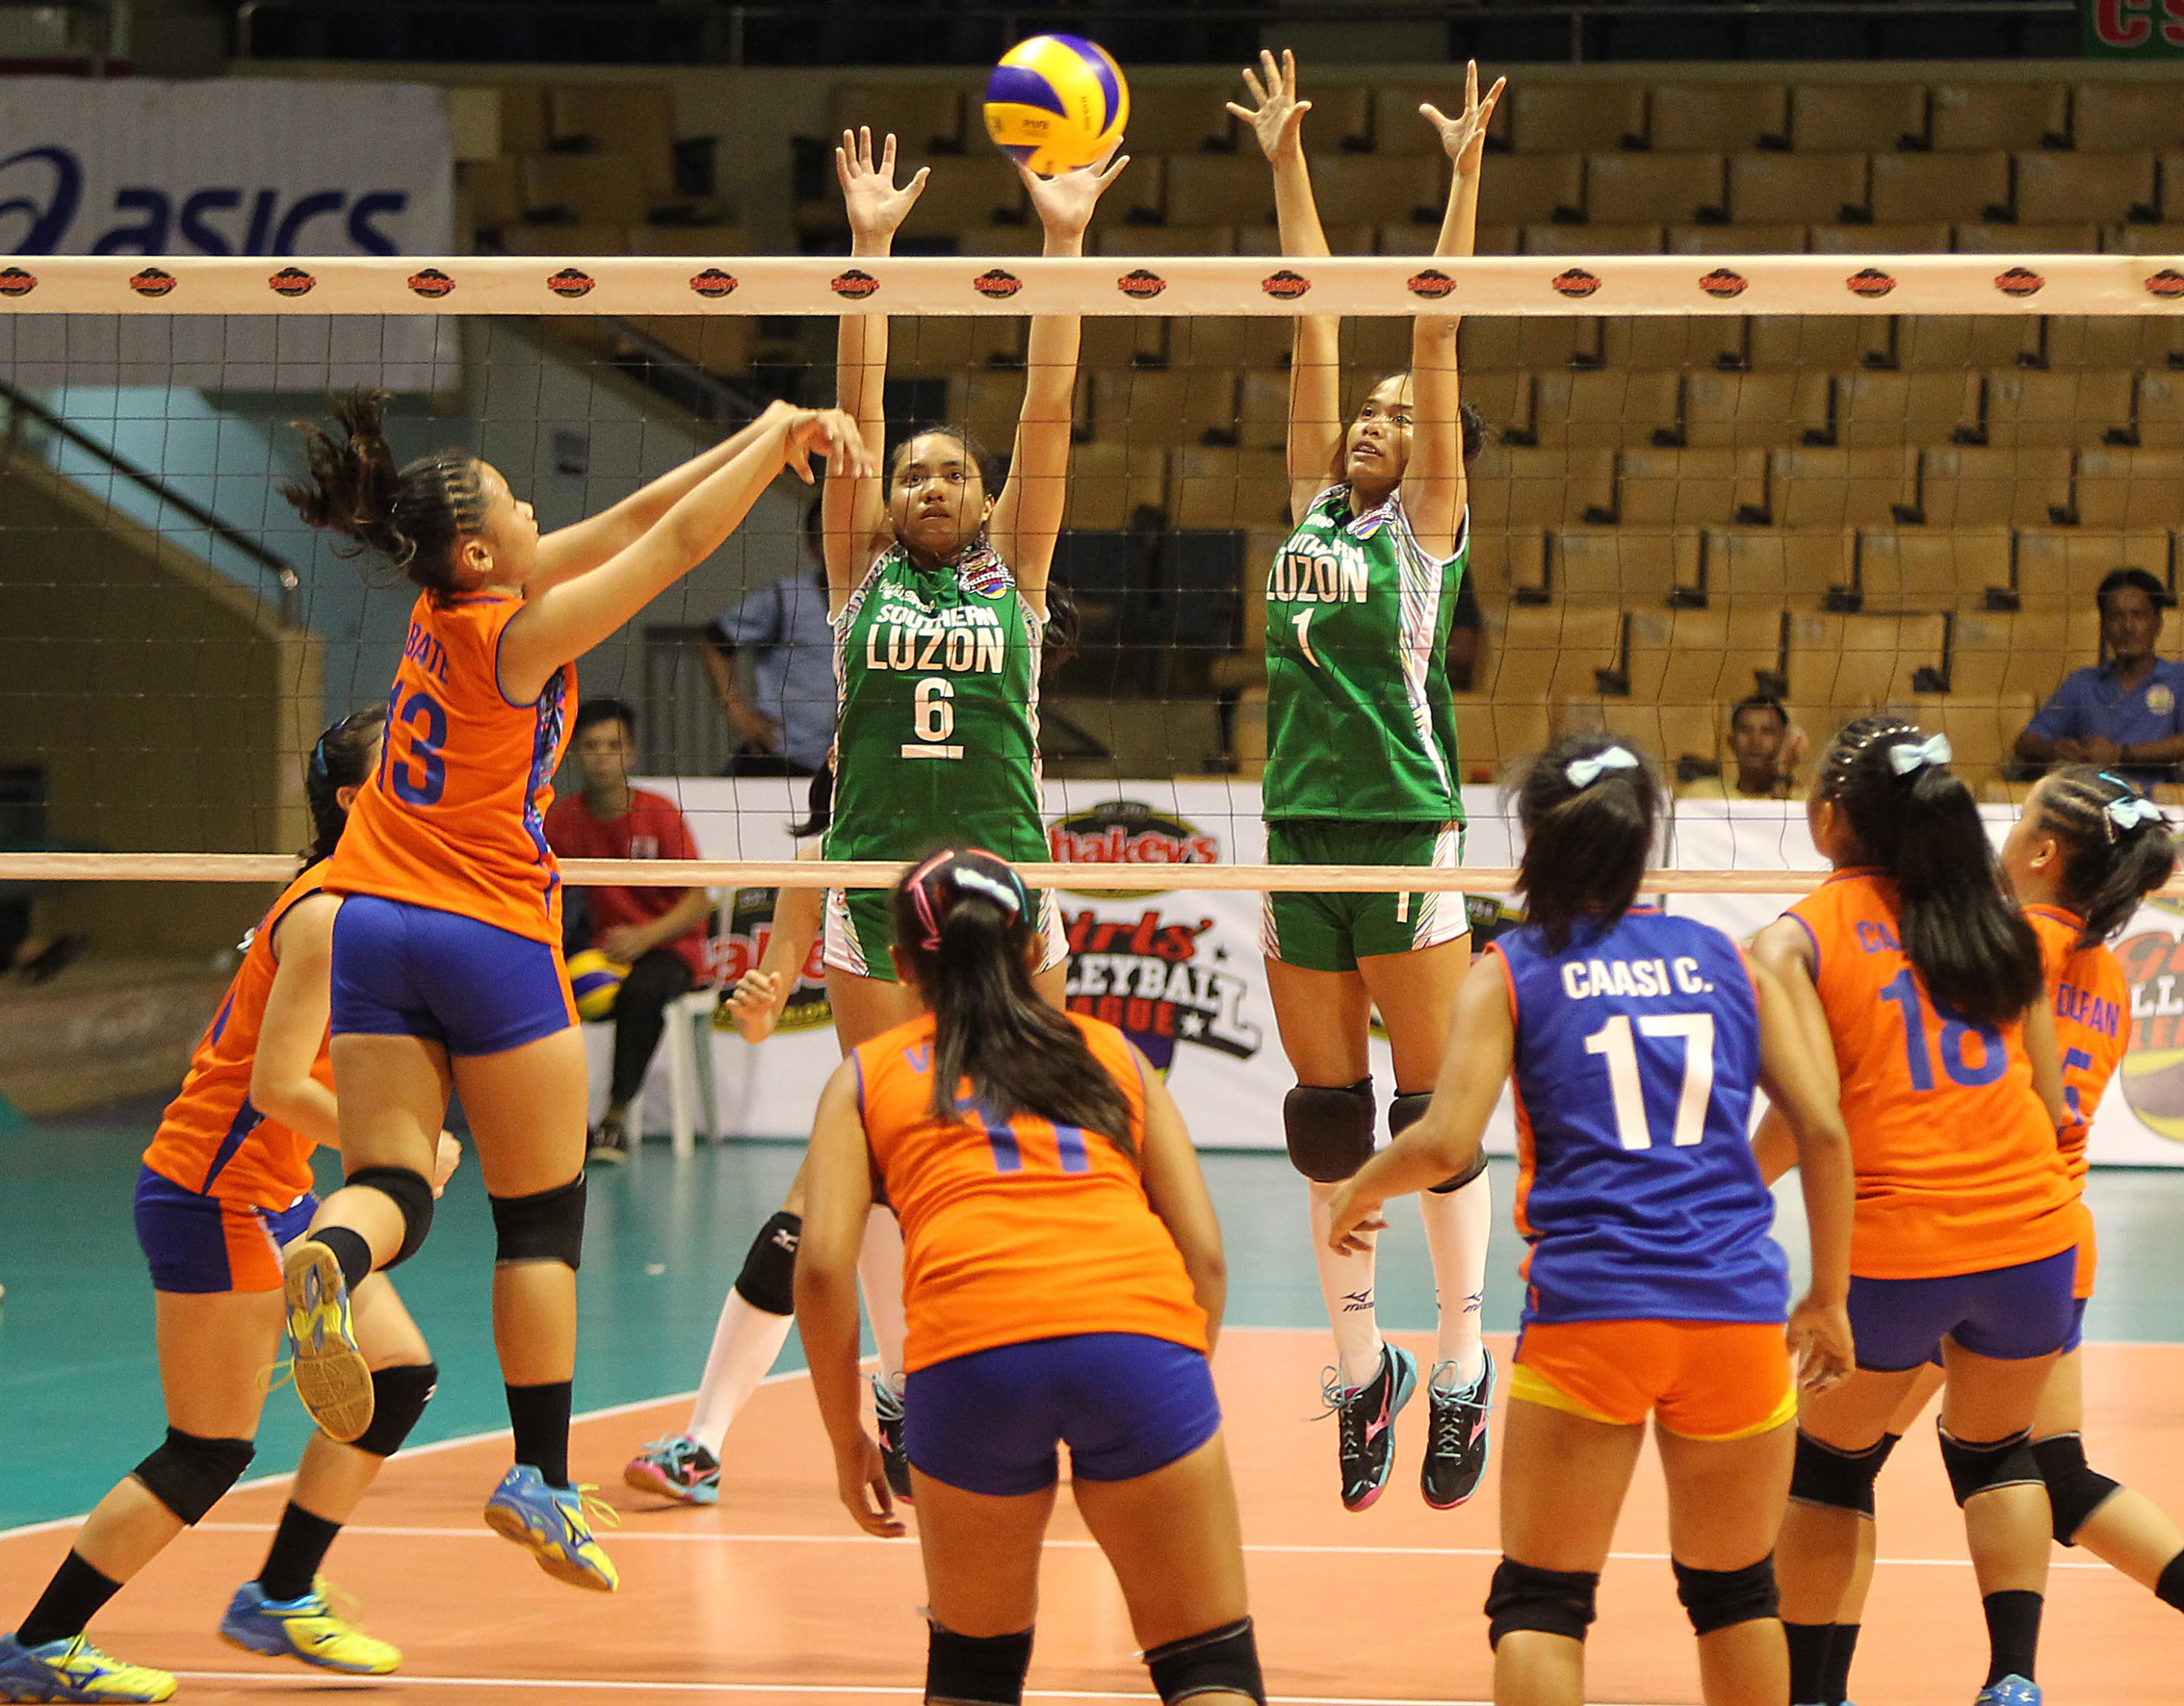 Central Visayas' Janzel Bate (13) scores over the outstretched arms of Southern Luzon's Janel Maraguinot and Jewel Encarnacion during the opener of the Shakey's Girls' Volleyball League national finals at the Astrodome last Monday.